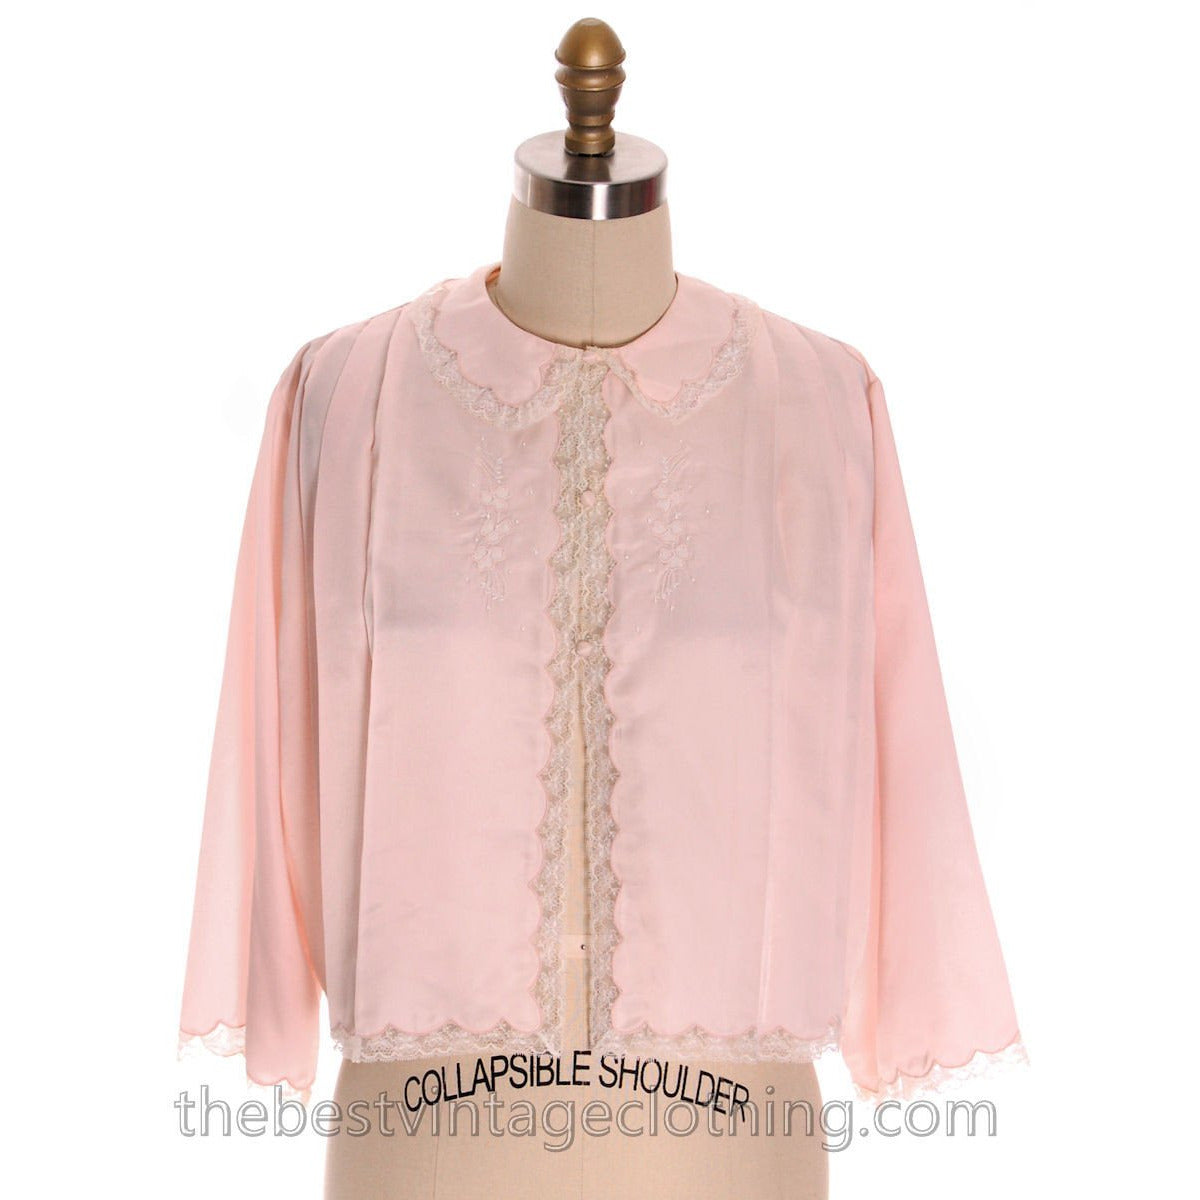 Vintage Bed Jacket Bonwit Teller Pink Satin w Lace Trim Never Worn 1950s L - The Best Vintage Clothing  - 1